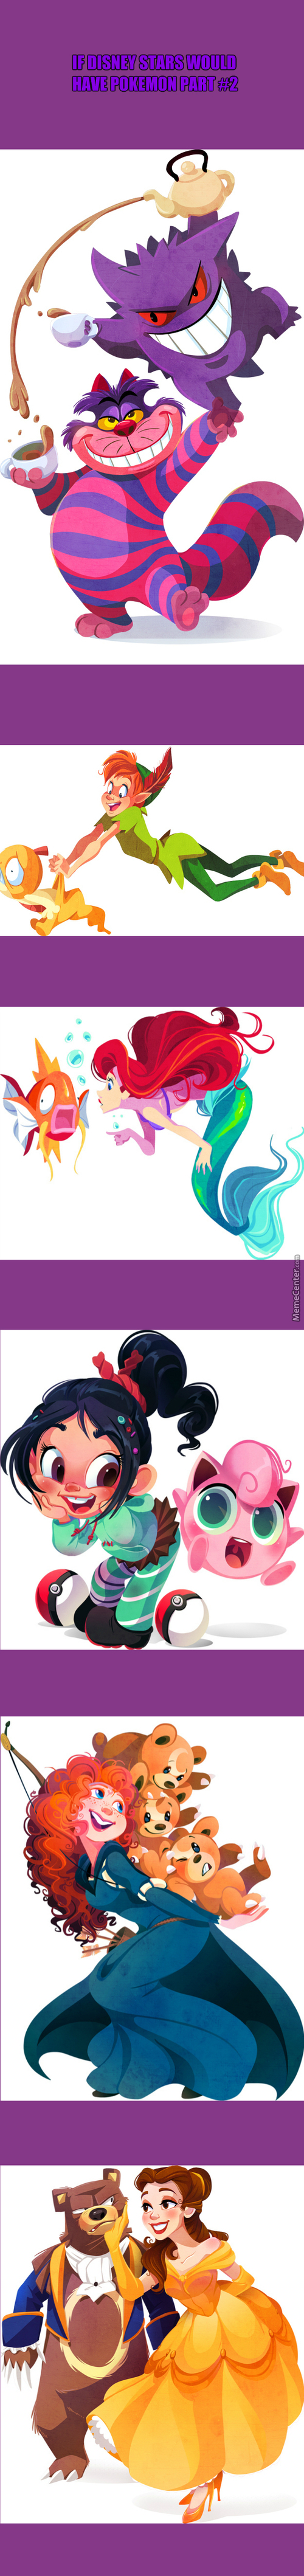 Disney Stars There Pokemon Part 2